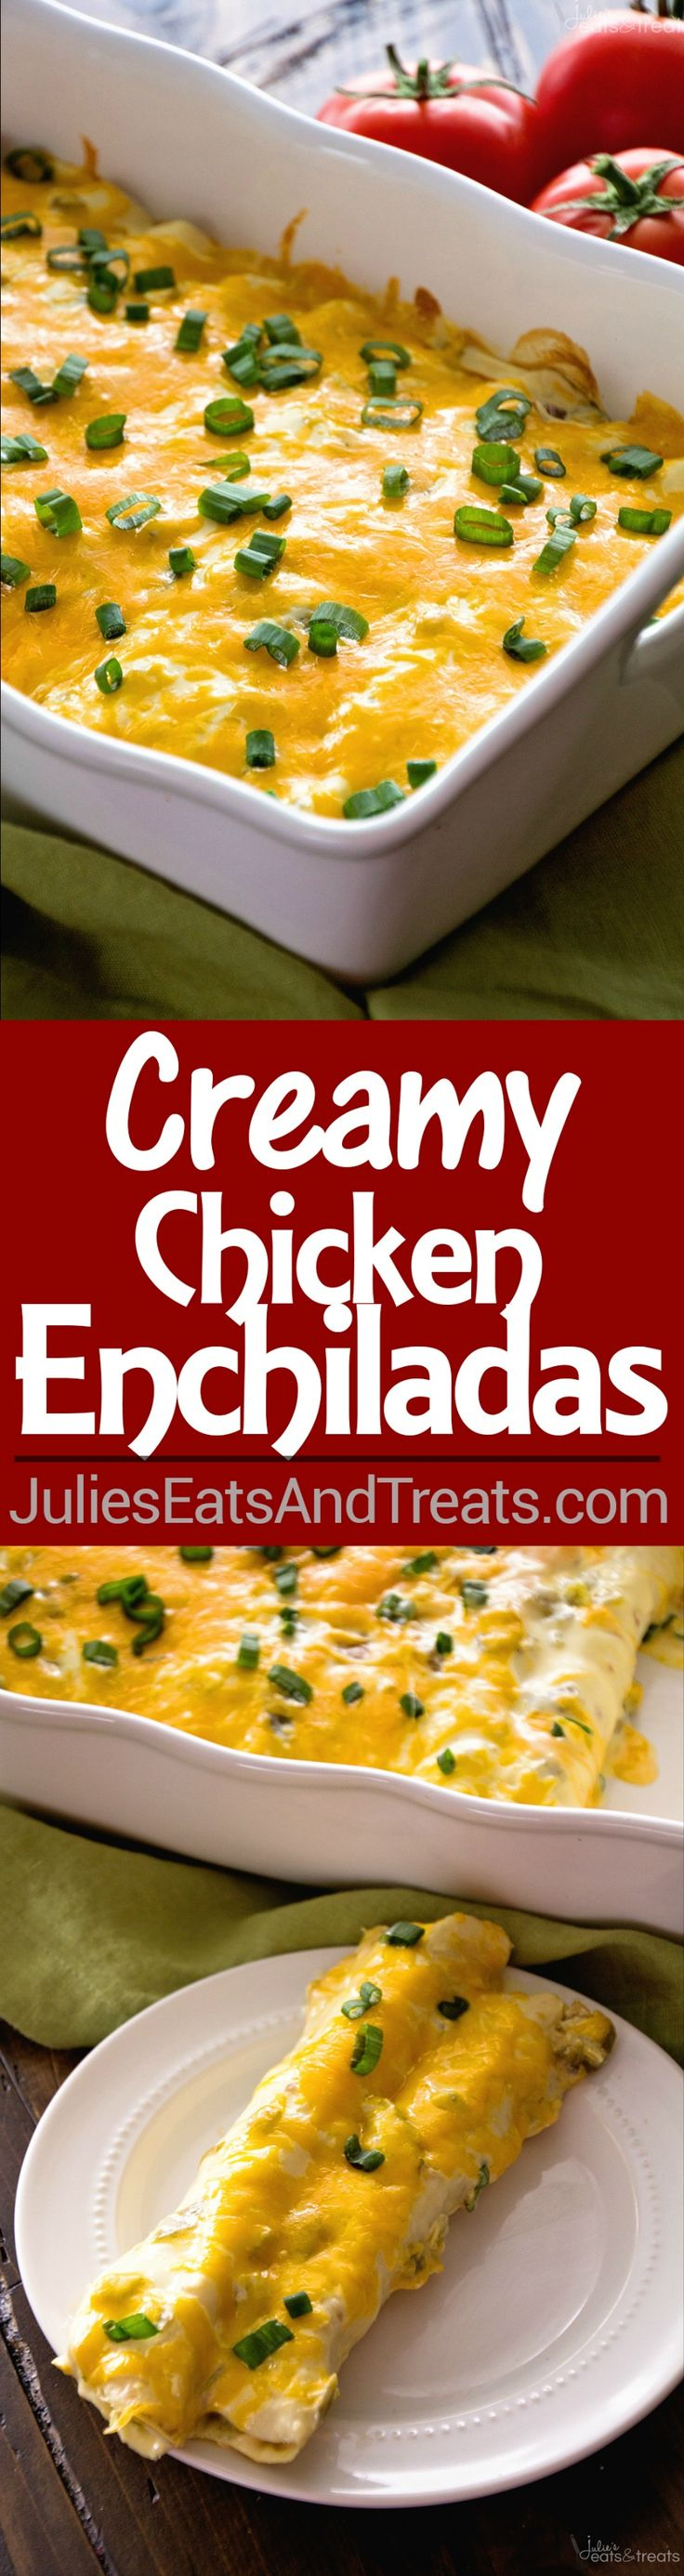 Creamy Chicken Enchiladas Recipe ~ Easy Weeknight Dinner! Delicious Creamy Chicken Enchiladas Loaded with Cheese!